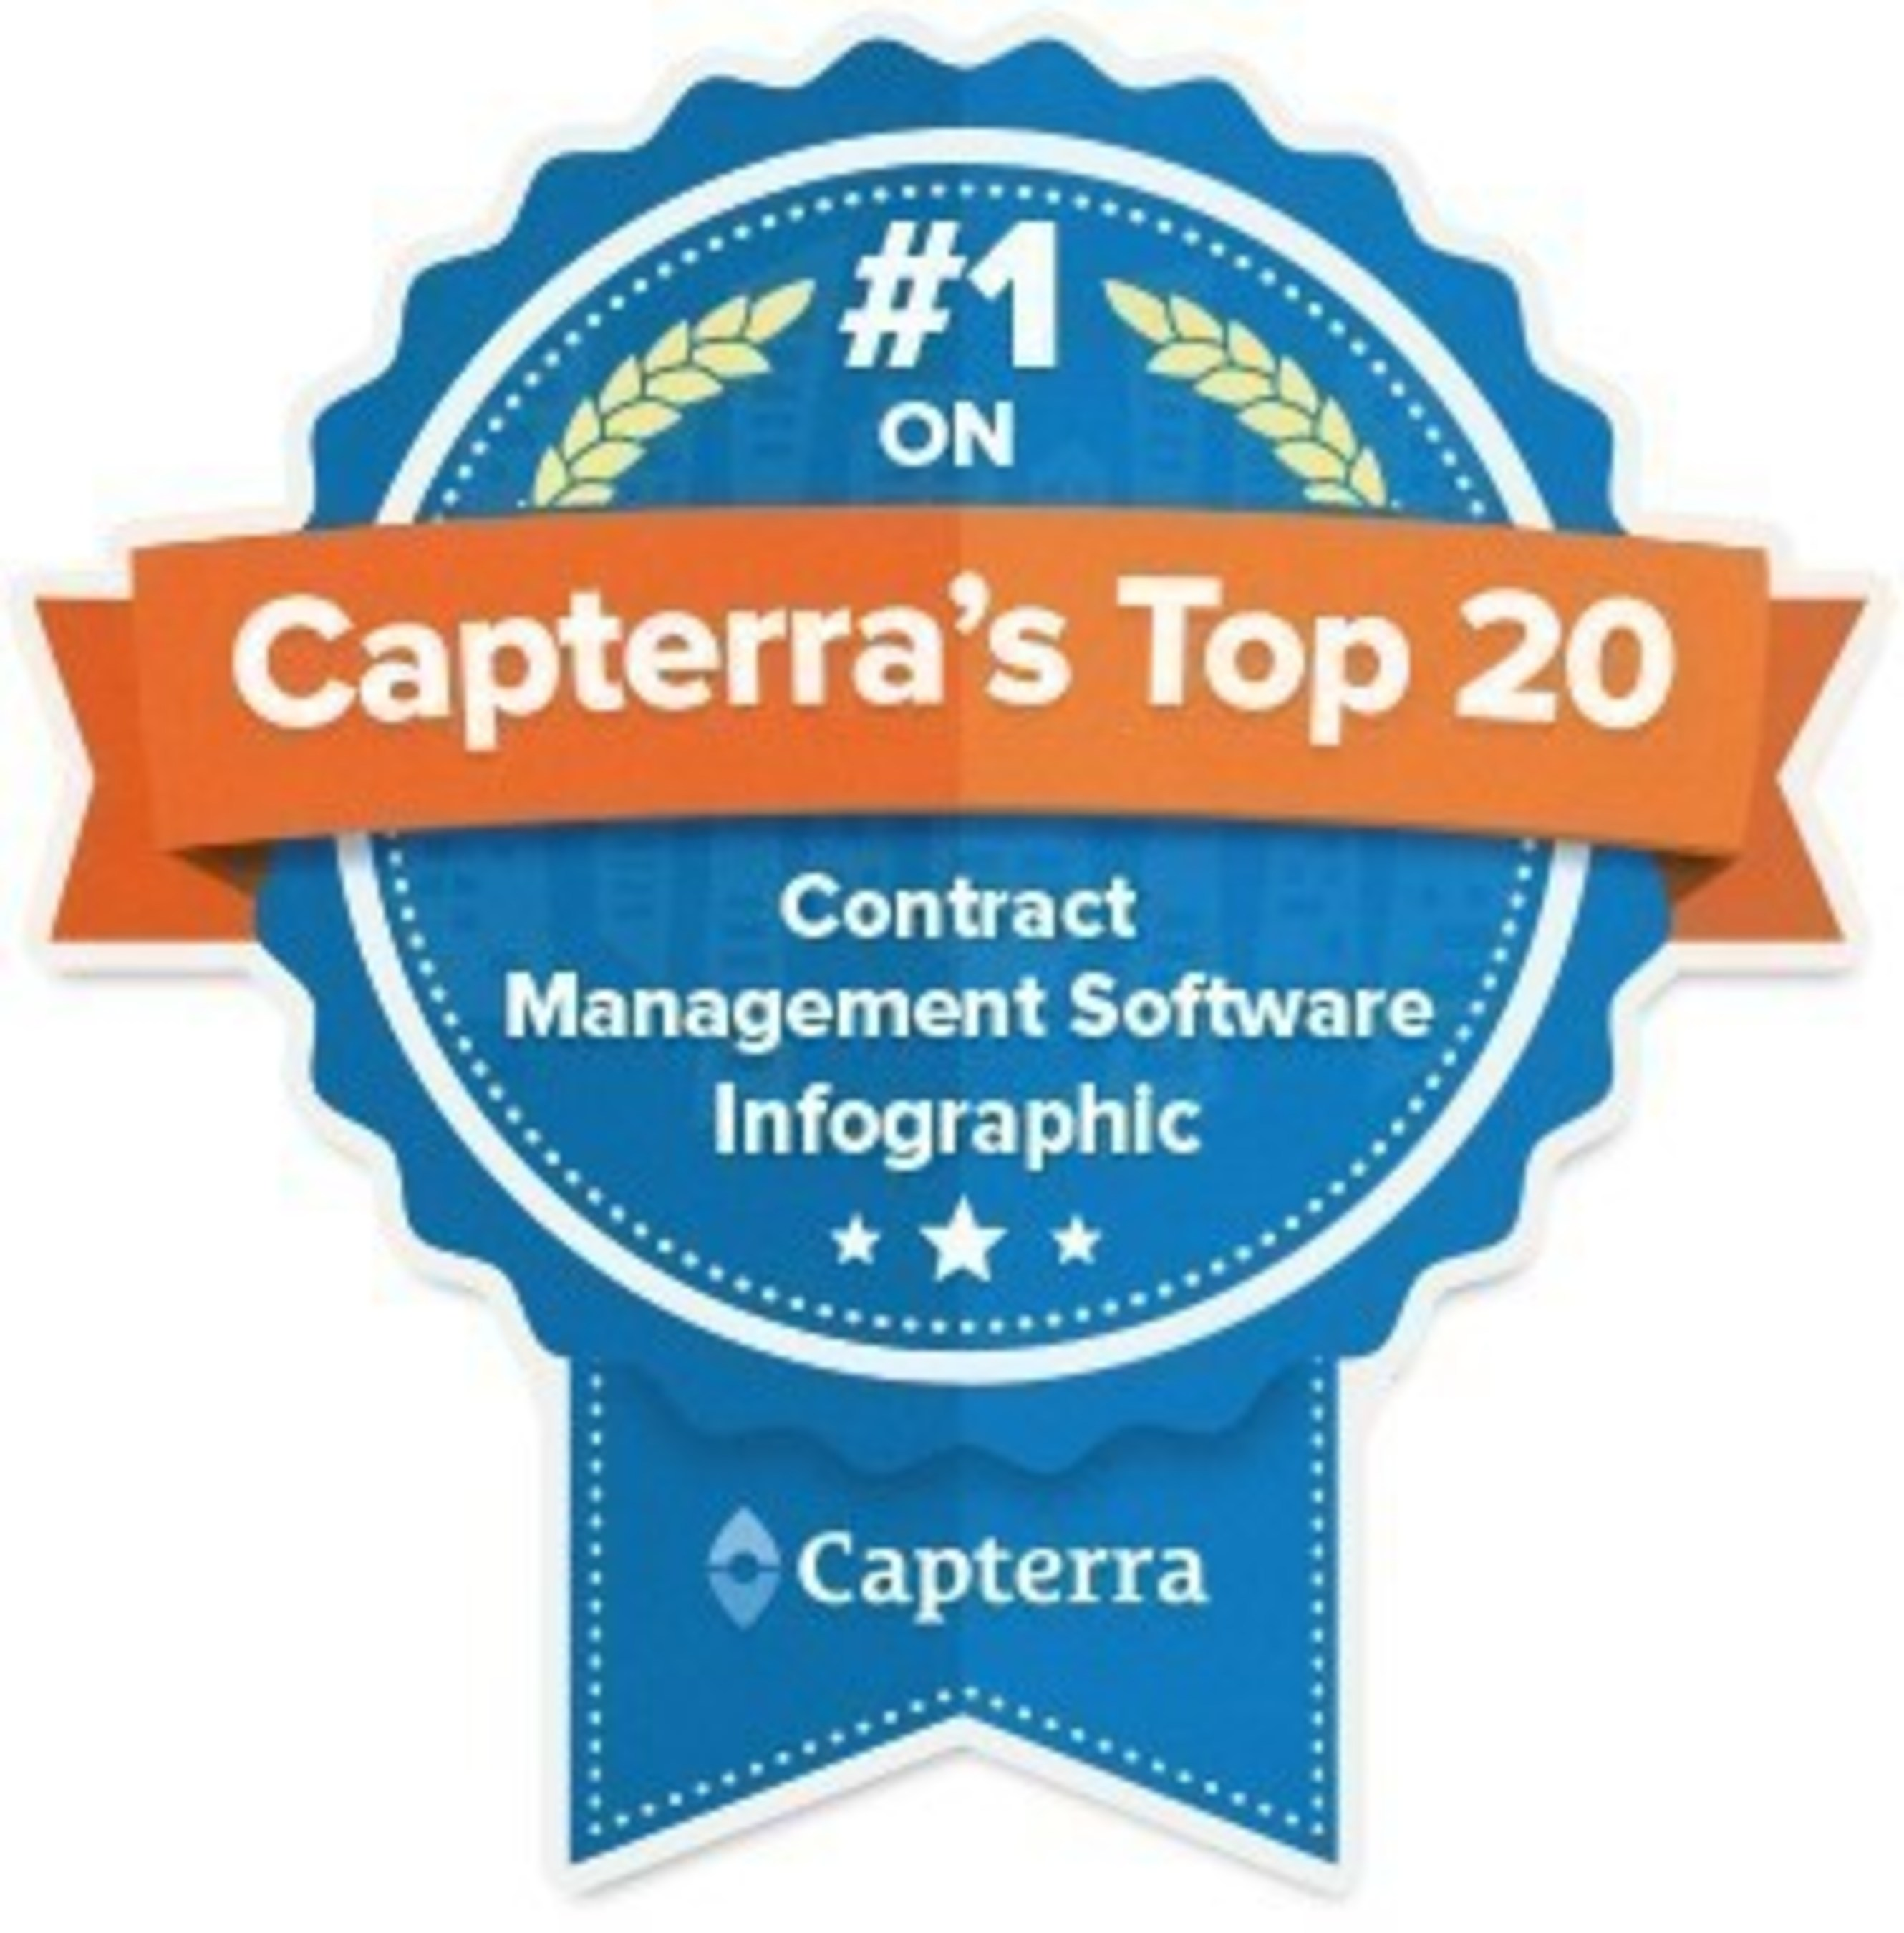 Agiloft Attains Number One Slot on Capterra's Top 20 List of Contract Management Software Solutions